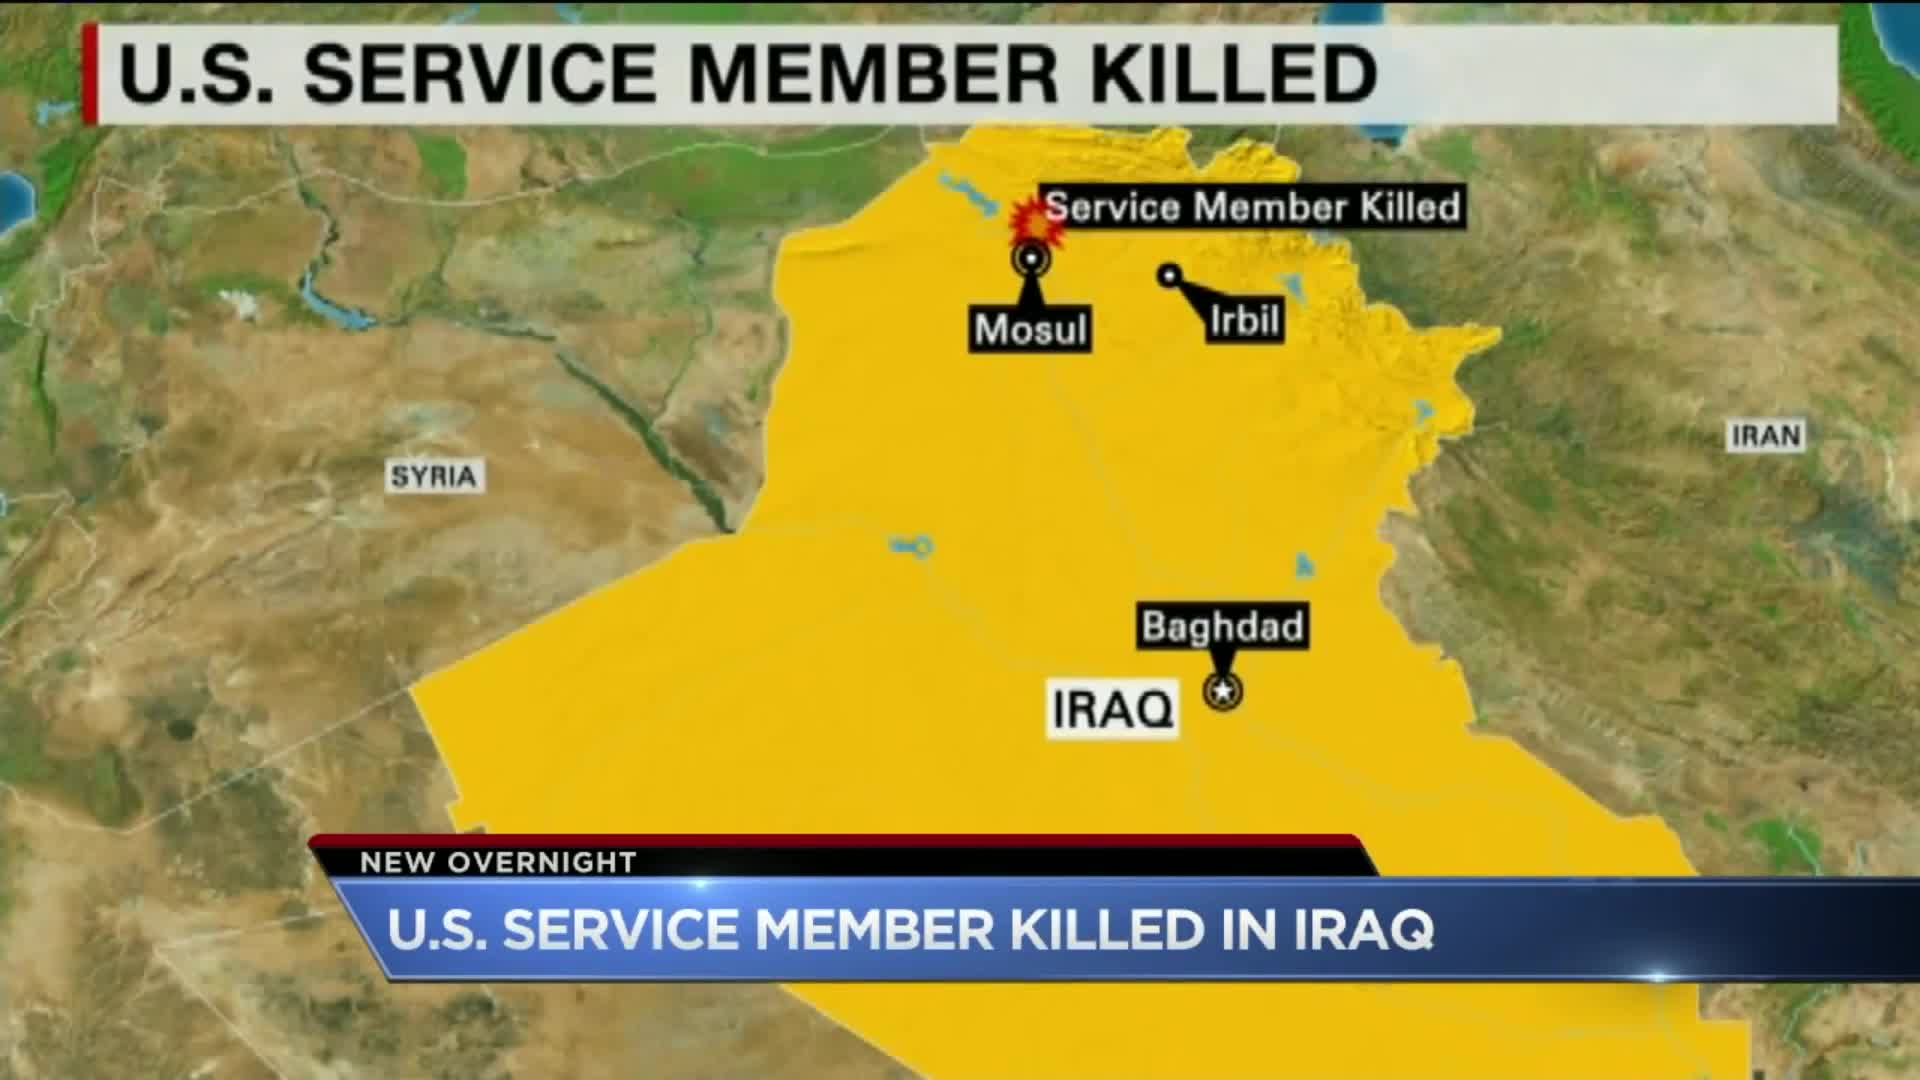 American Service Member Killed in Iraq